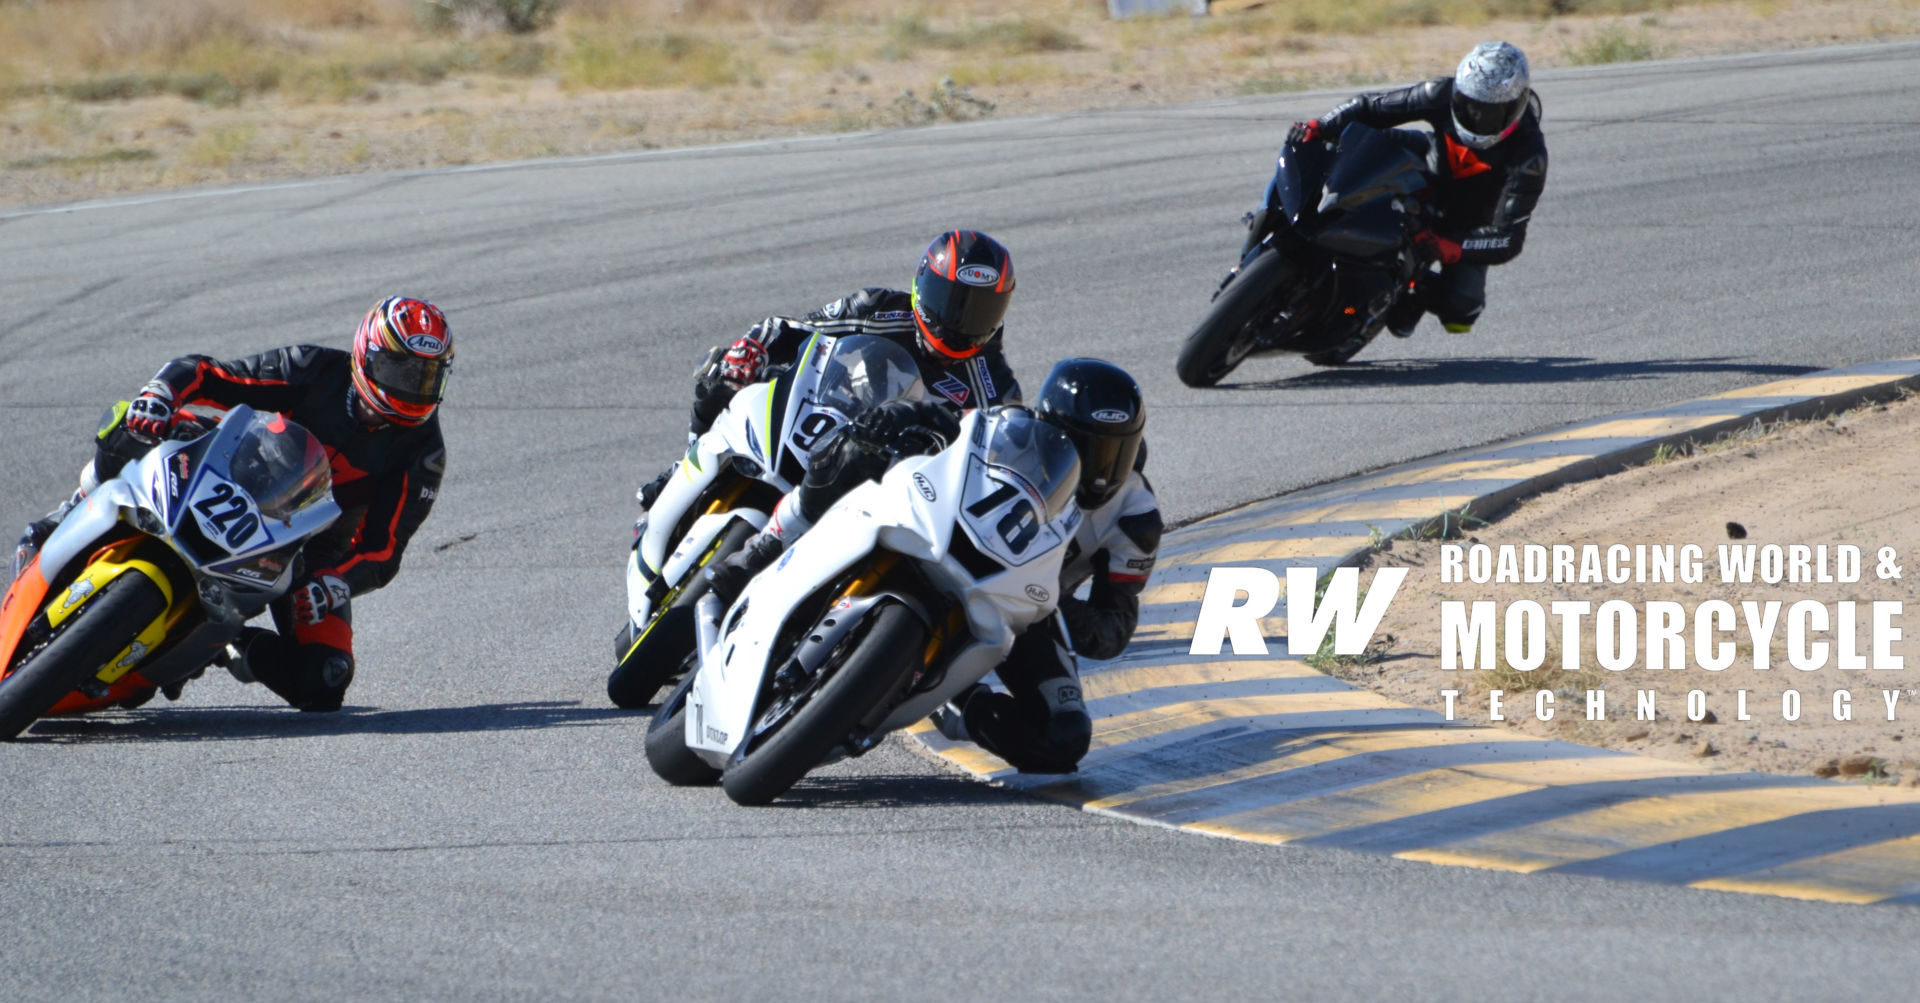 Racers doing laps during a SoCal Track Days event at Chuckwalla Valley Raceway. Photo by David Swarts.